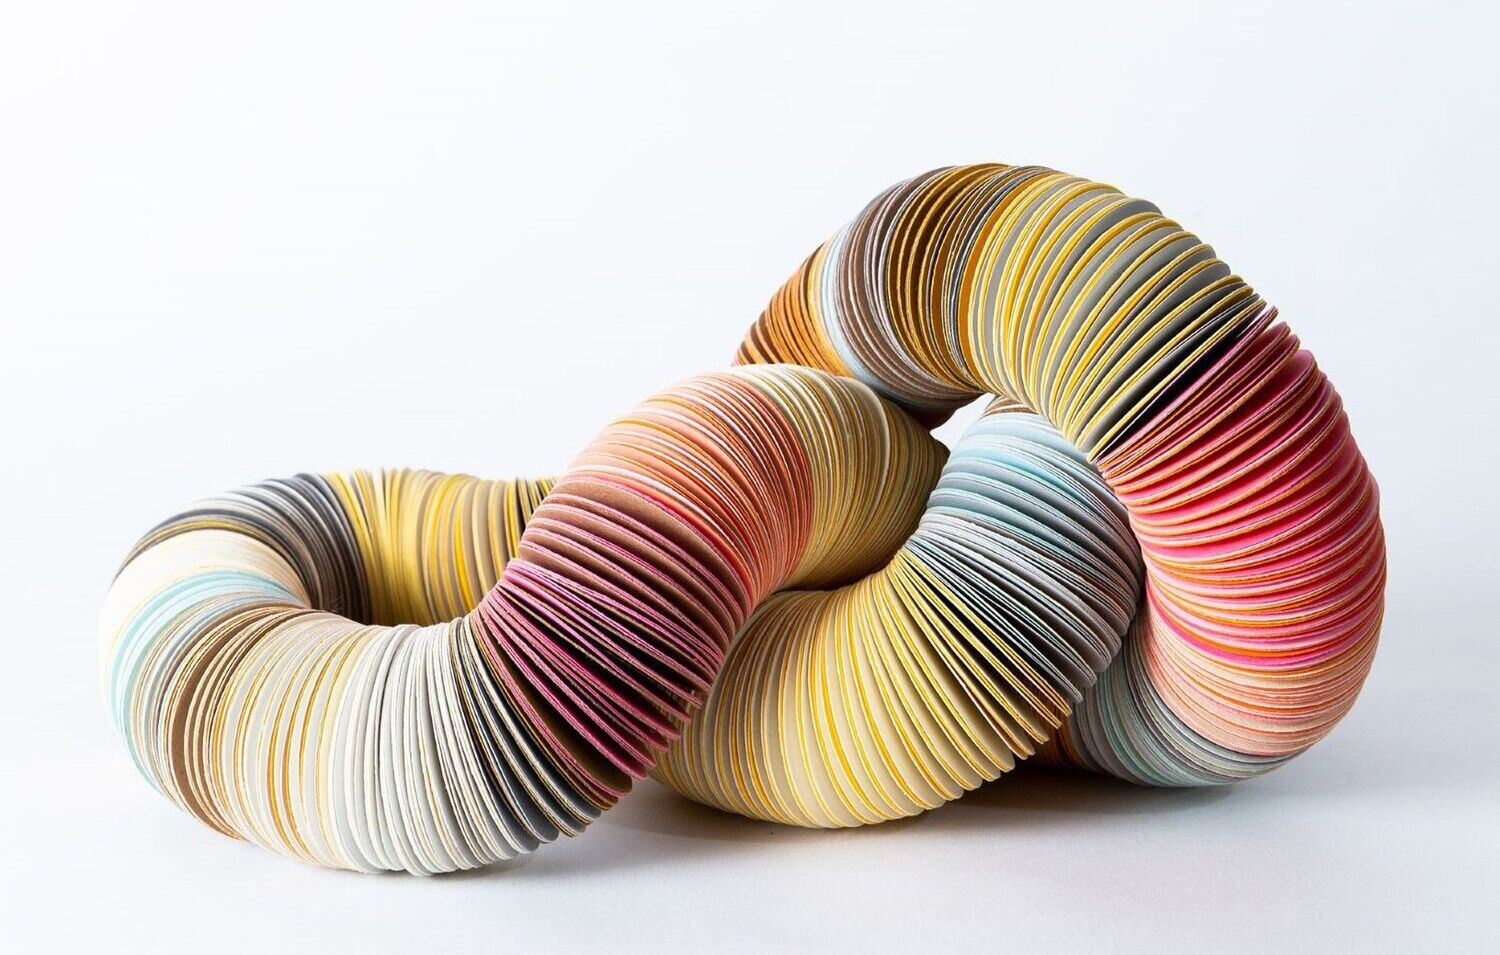 Image: Michelle Cangiano, Knotted neckpiece, embossed paper, nylon thread. Photographer: Michael Pham.